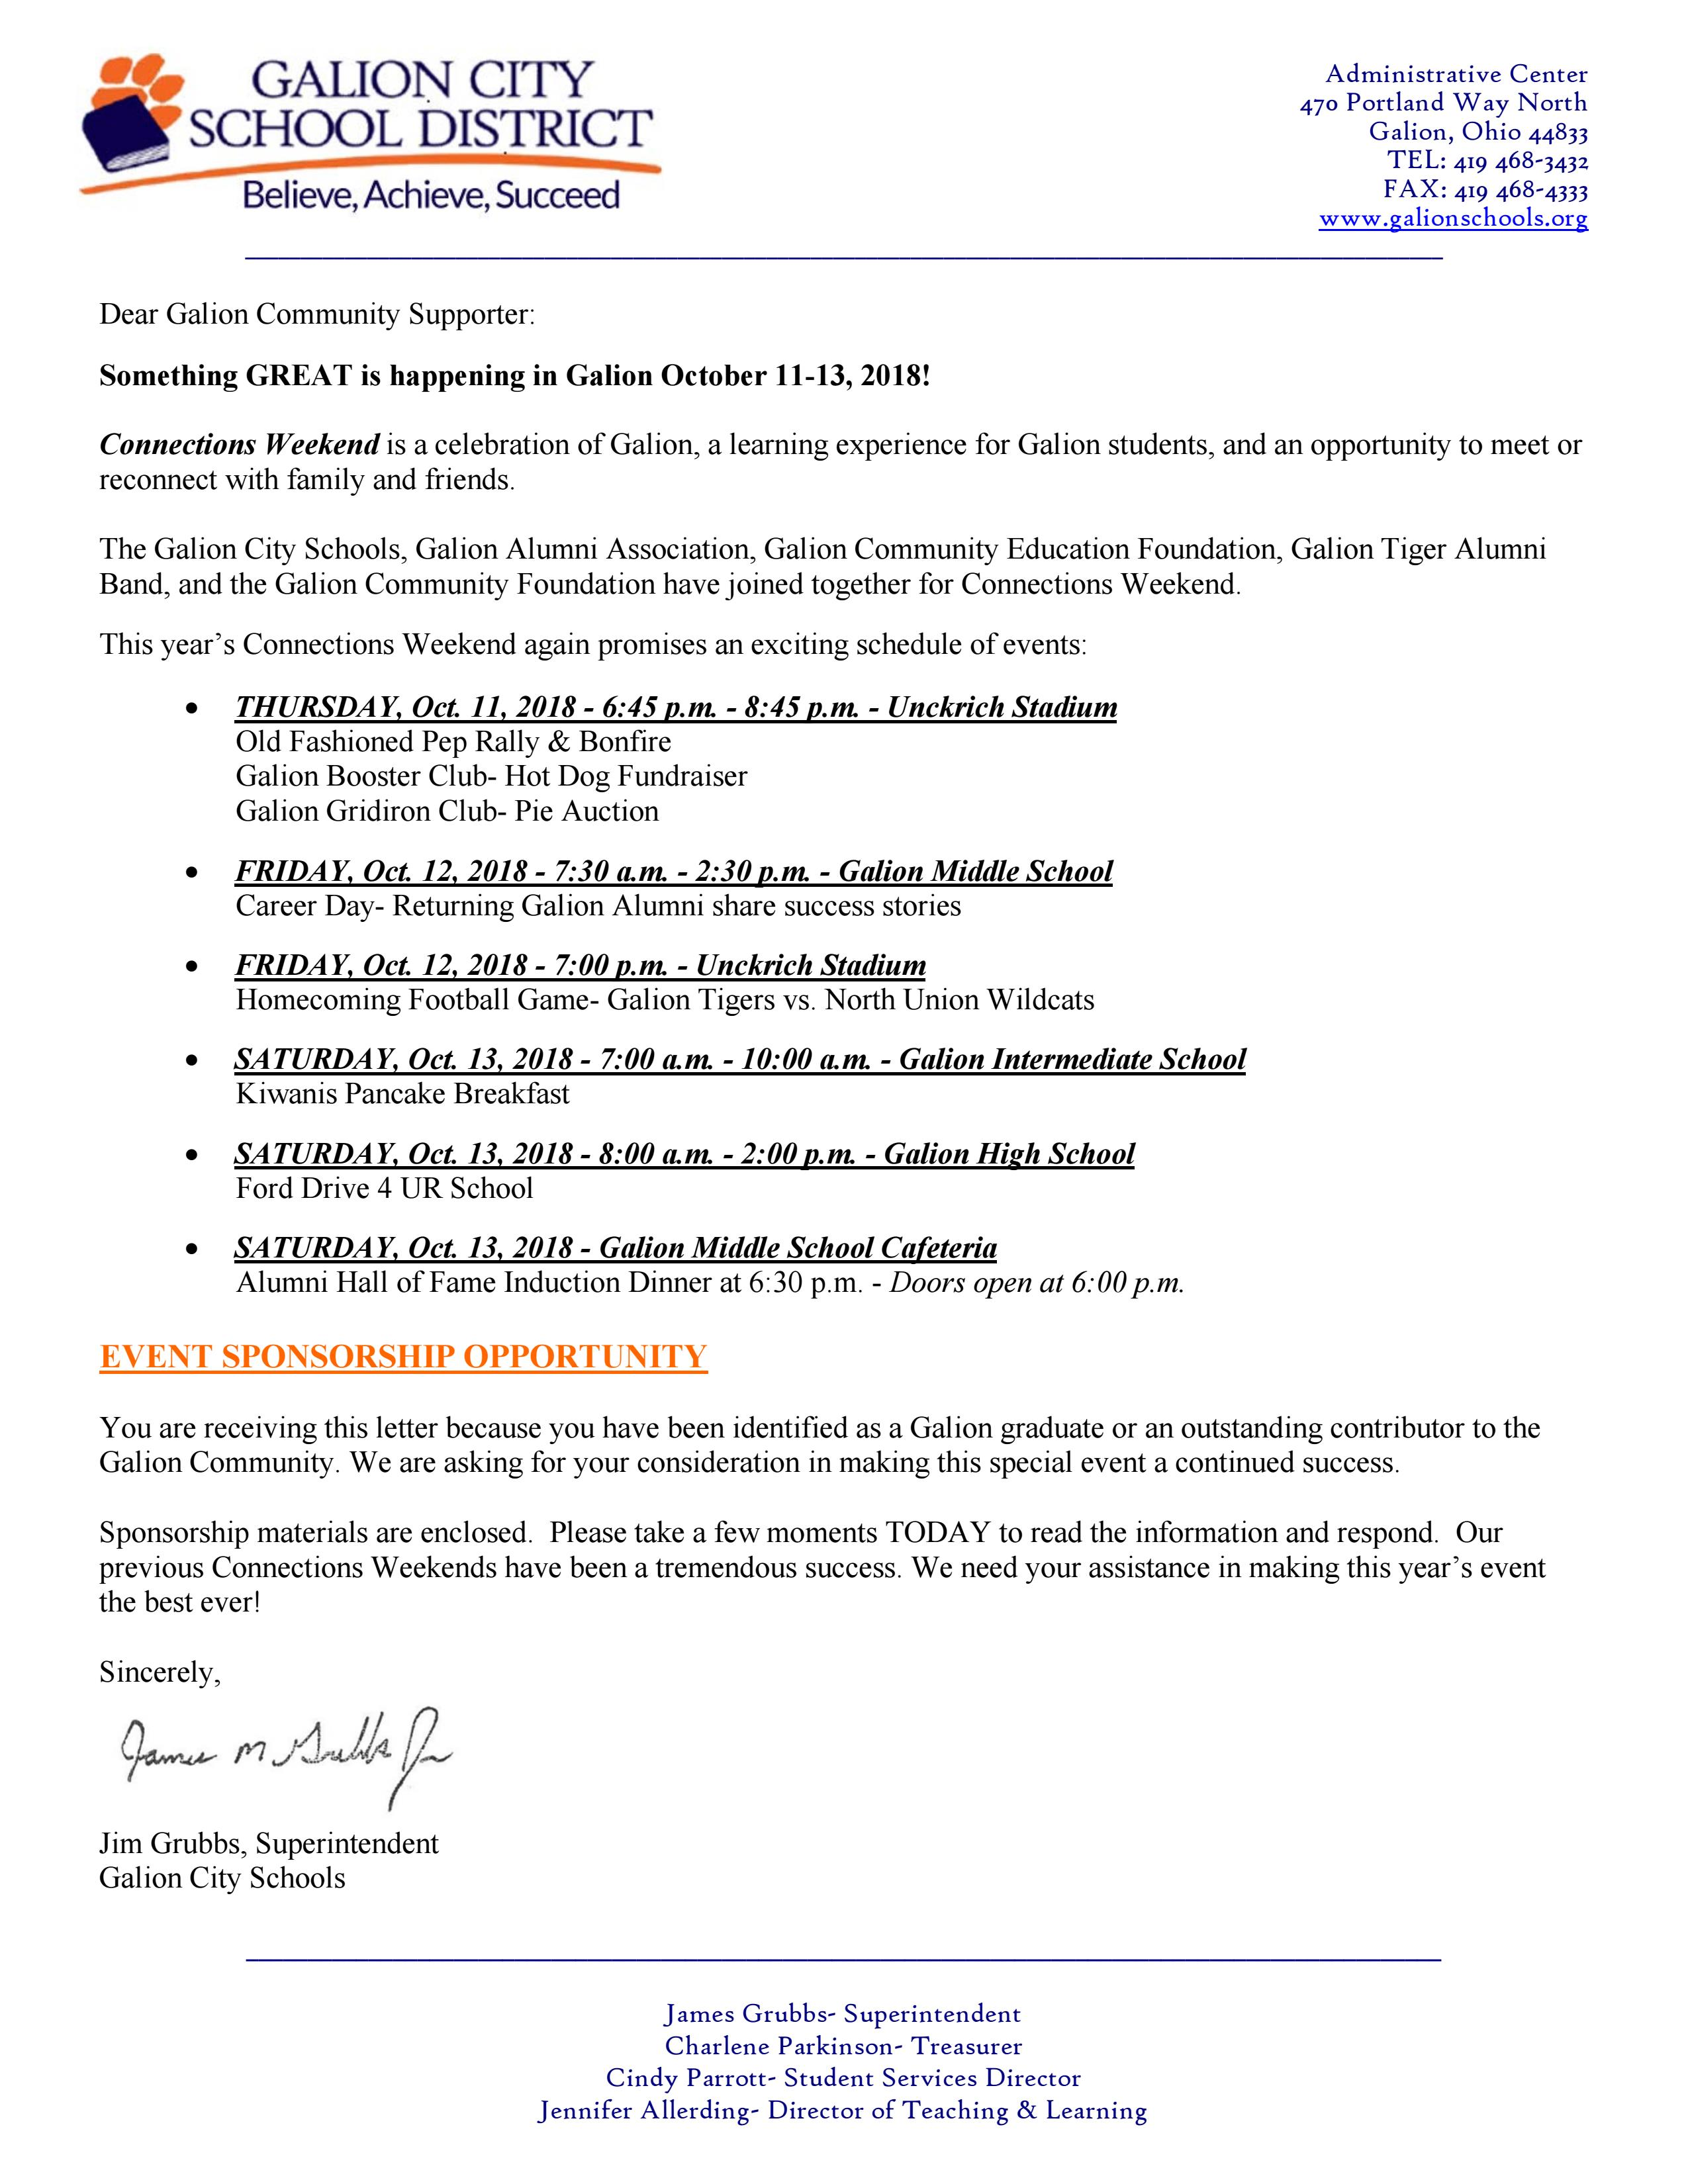 2018 connections sponsor letter - page 1 (1).jpg